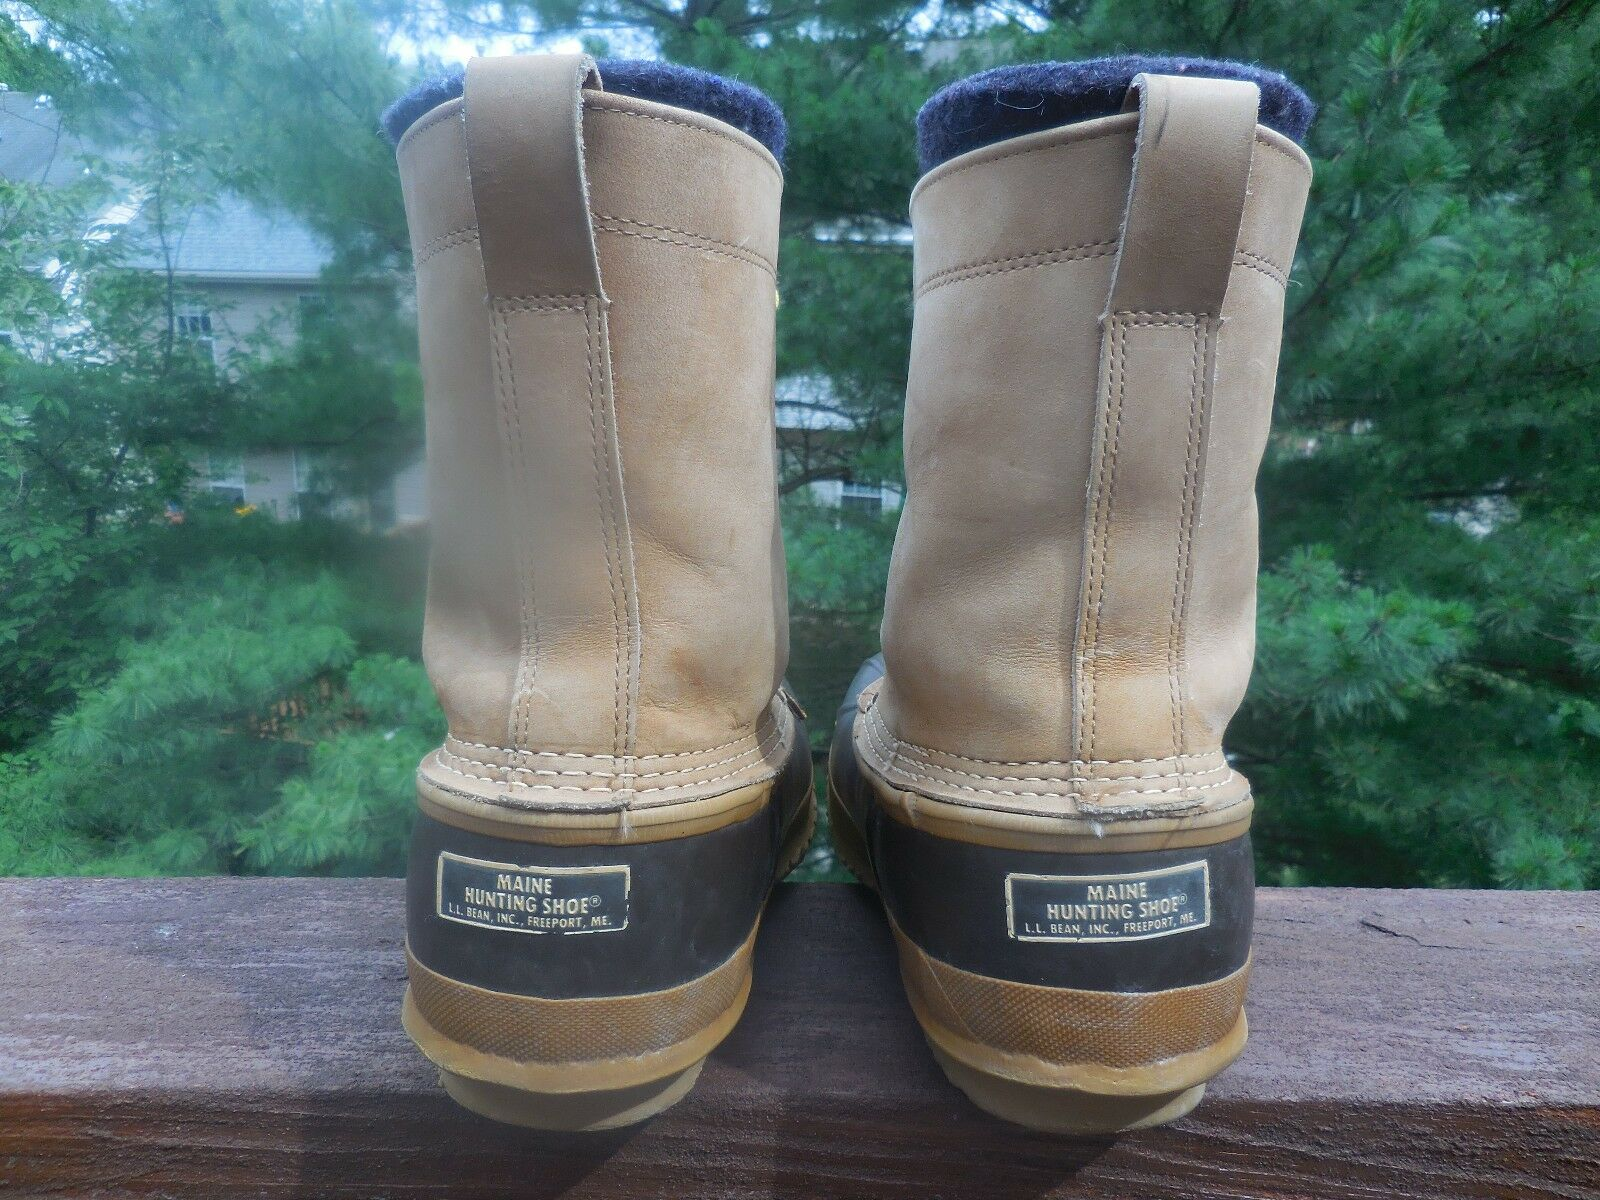 L.L .BEAN MEN'S SIZE 9 REMOVABLE INSULATED SHOE DUCK HUNTING  BOOT/ SHOE INSULATED MADE IN USA b3a9bd